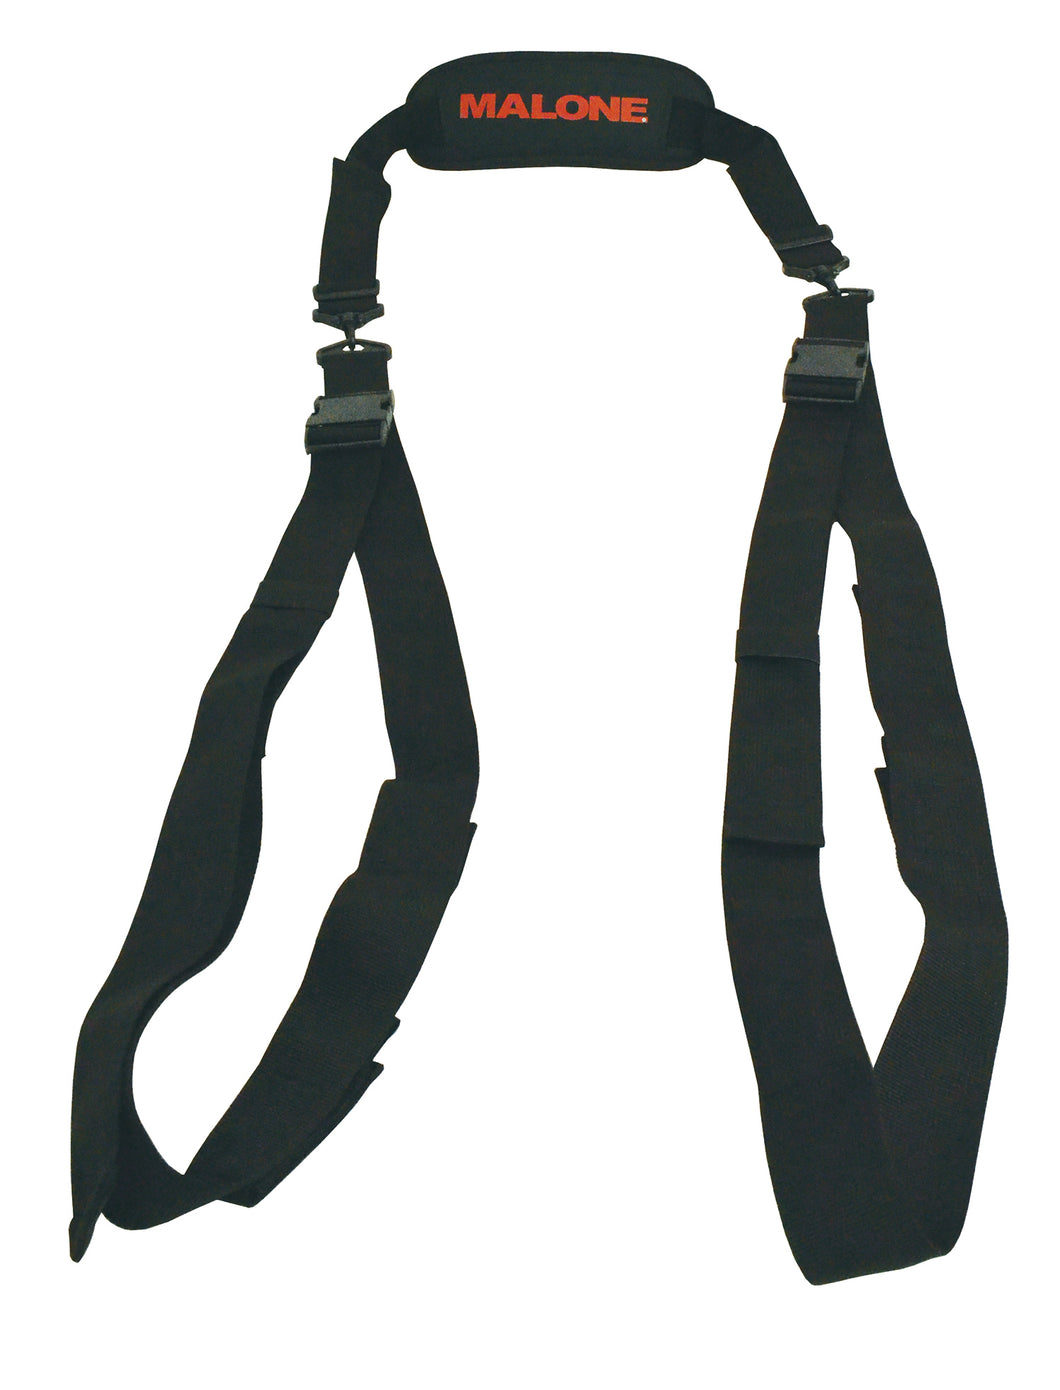 Malone: SuperiorSling SUP Shoulder Harness